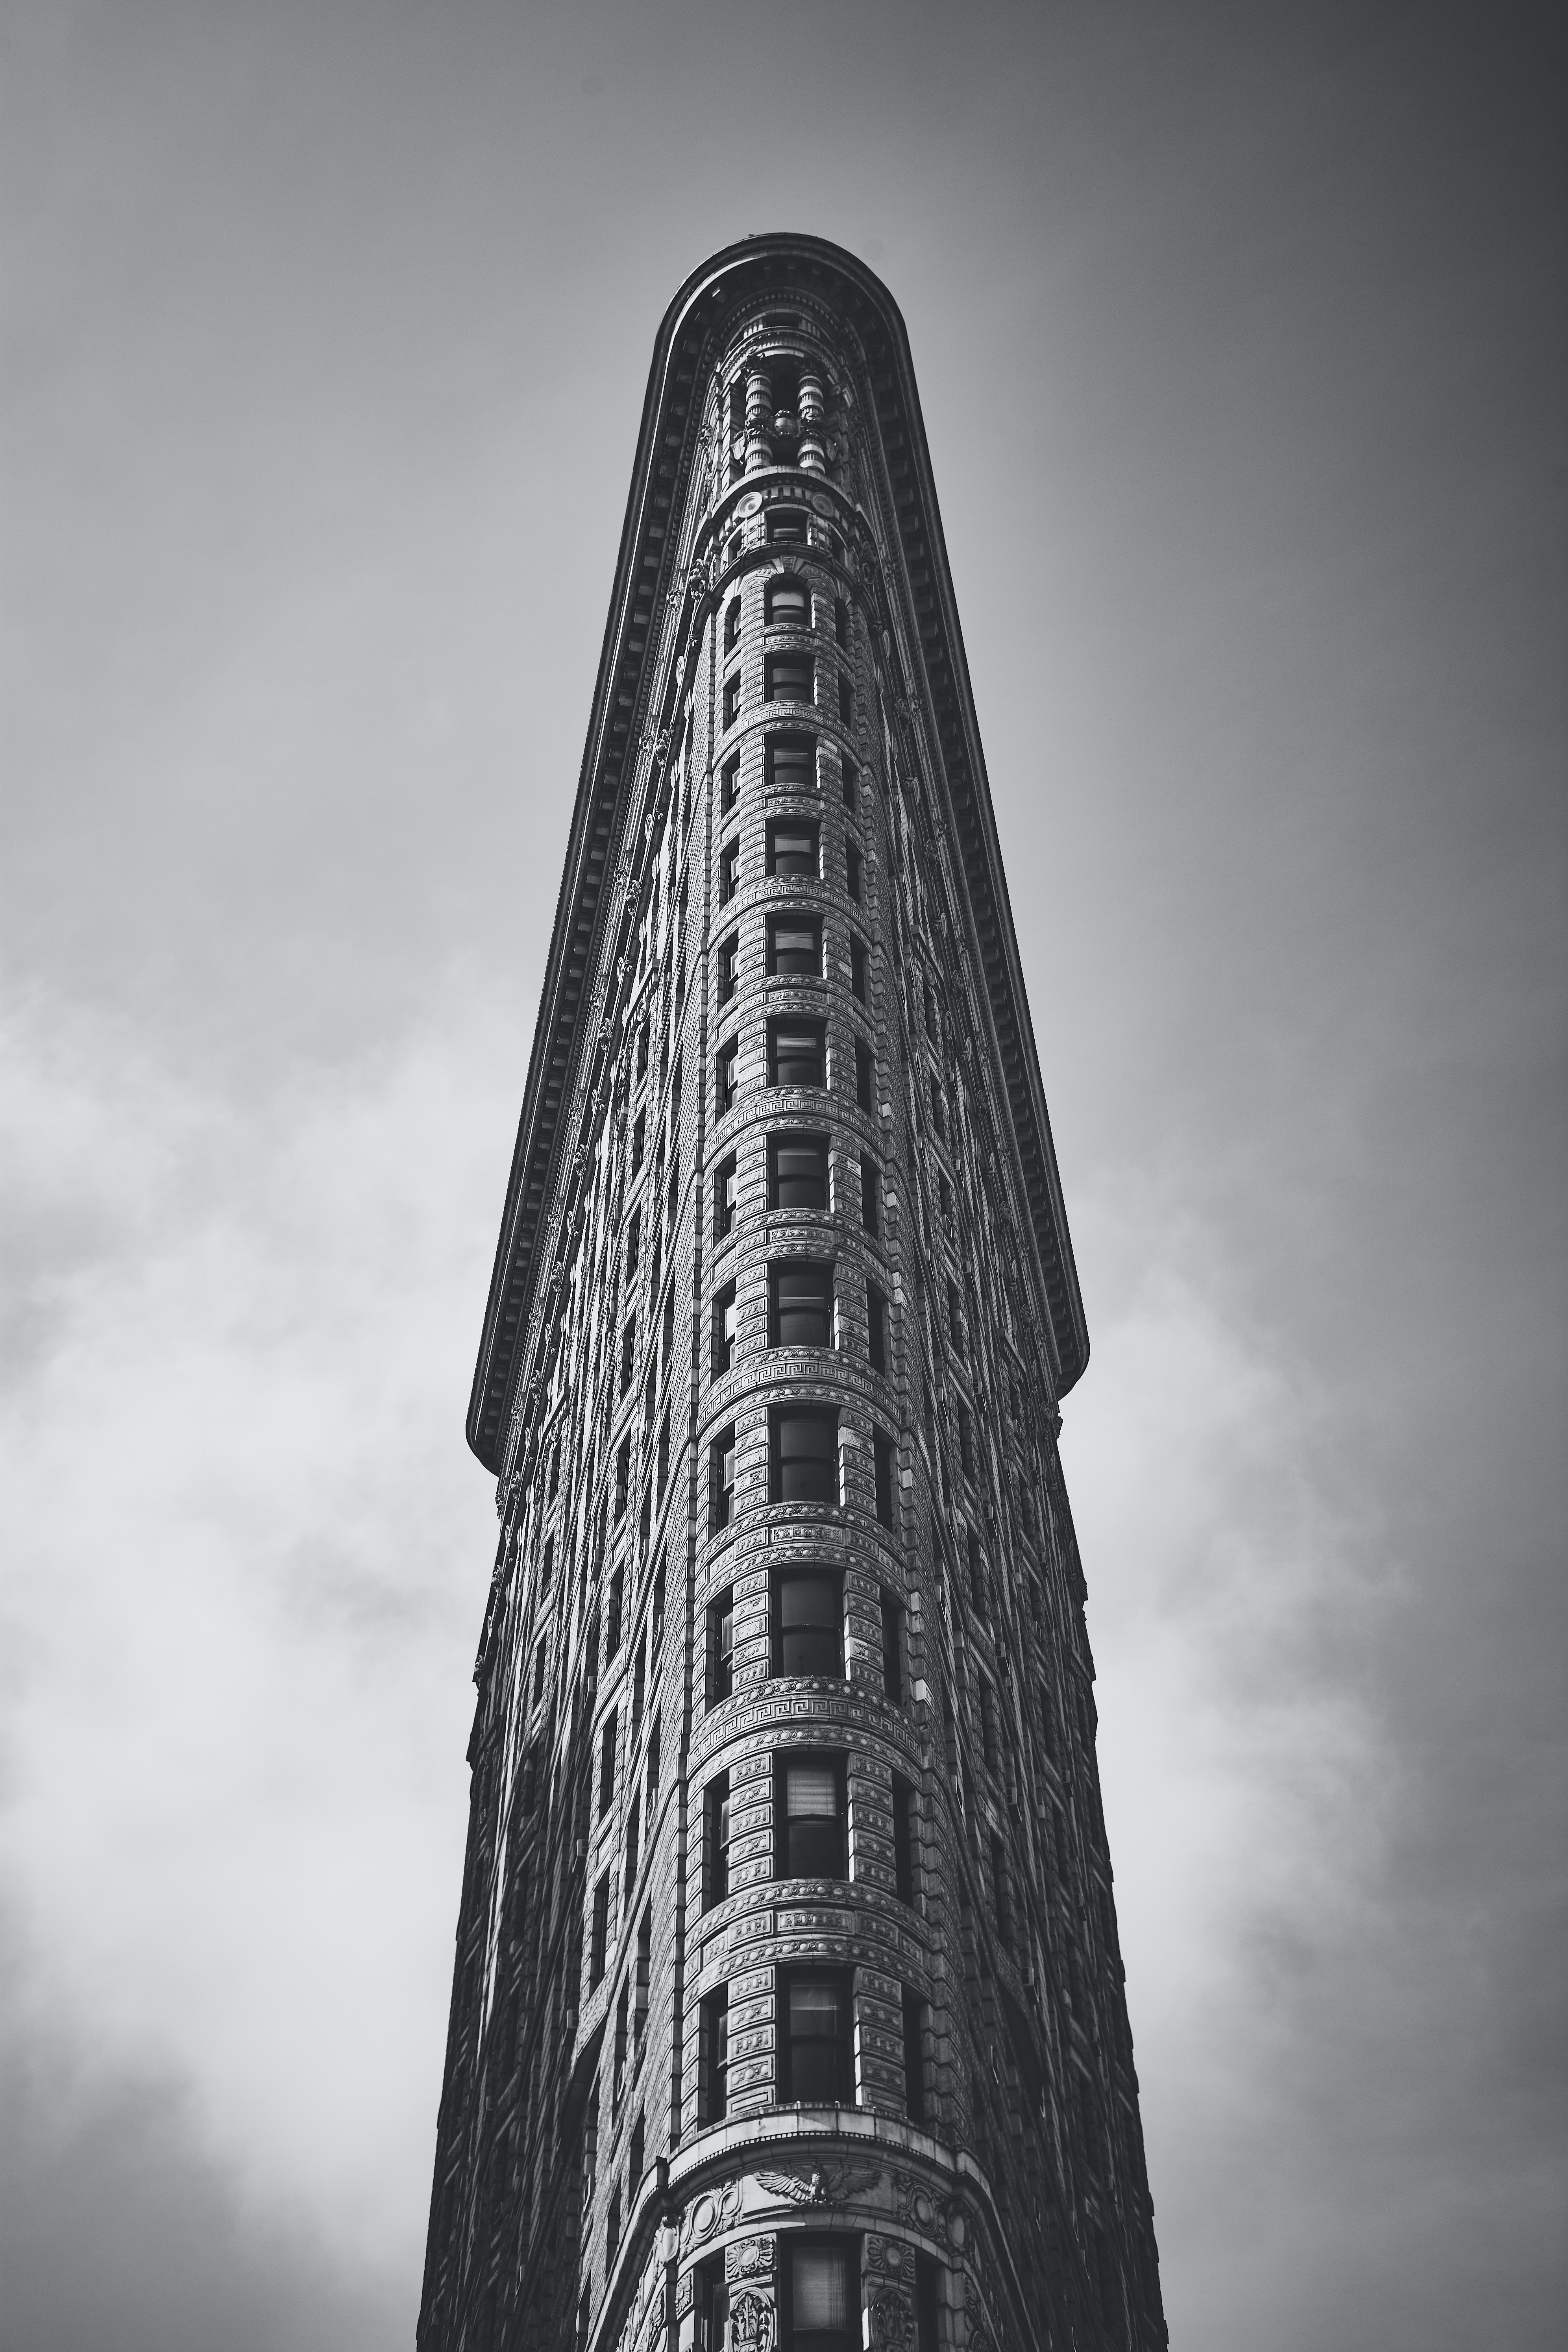 A black and white photograph of the Flatiron Building, New York.